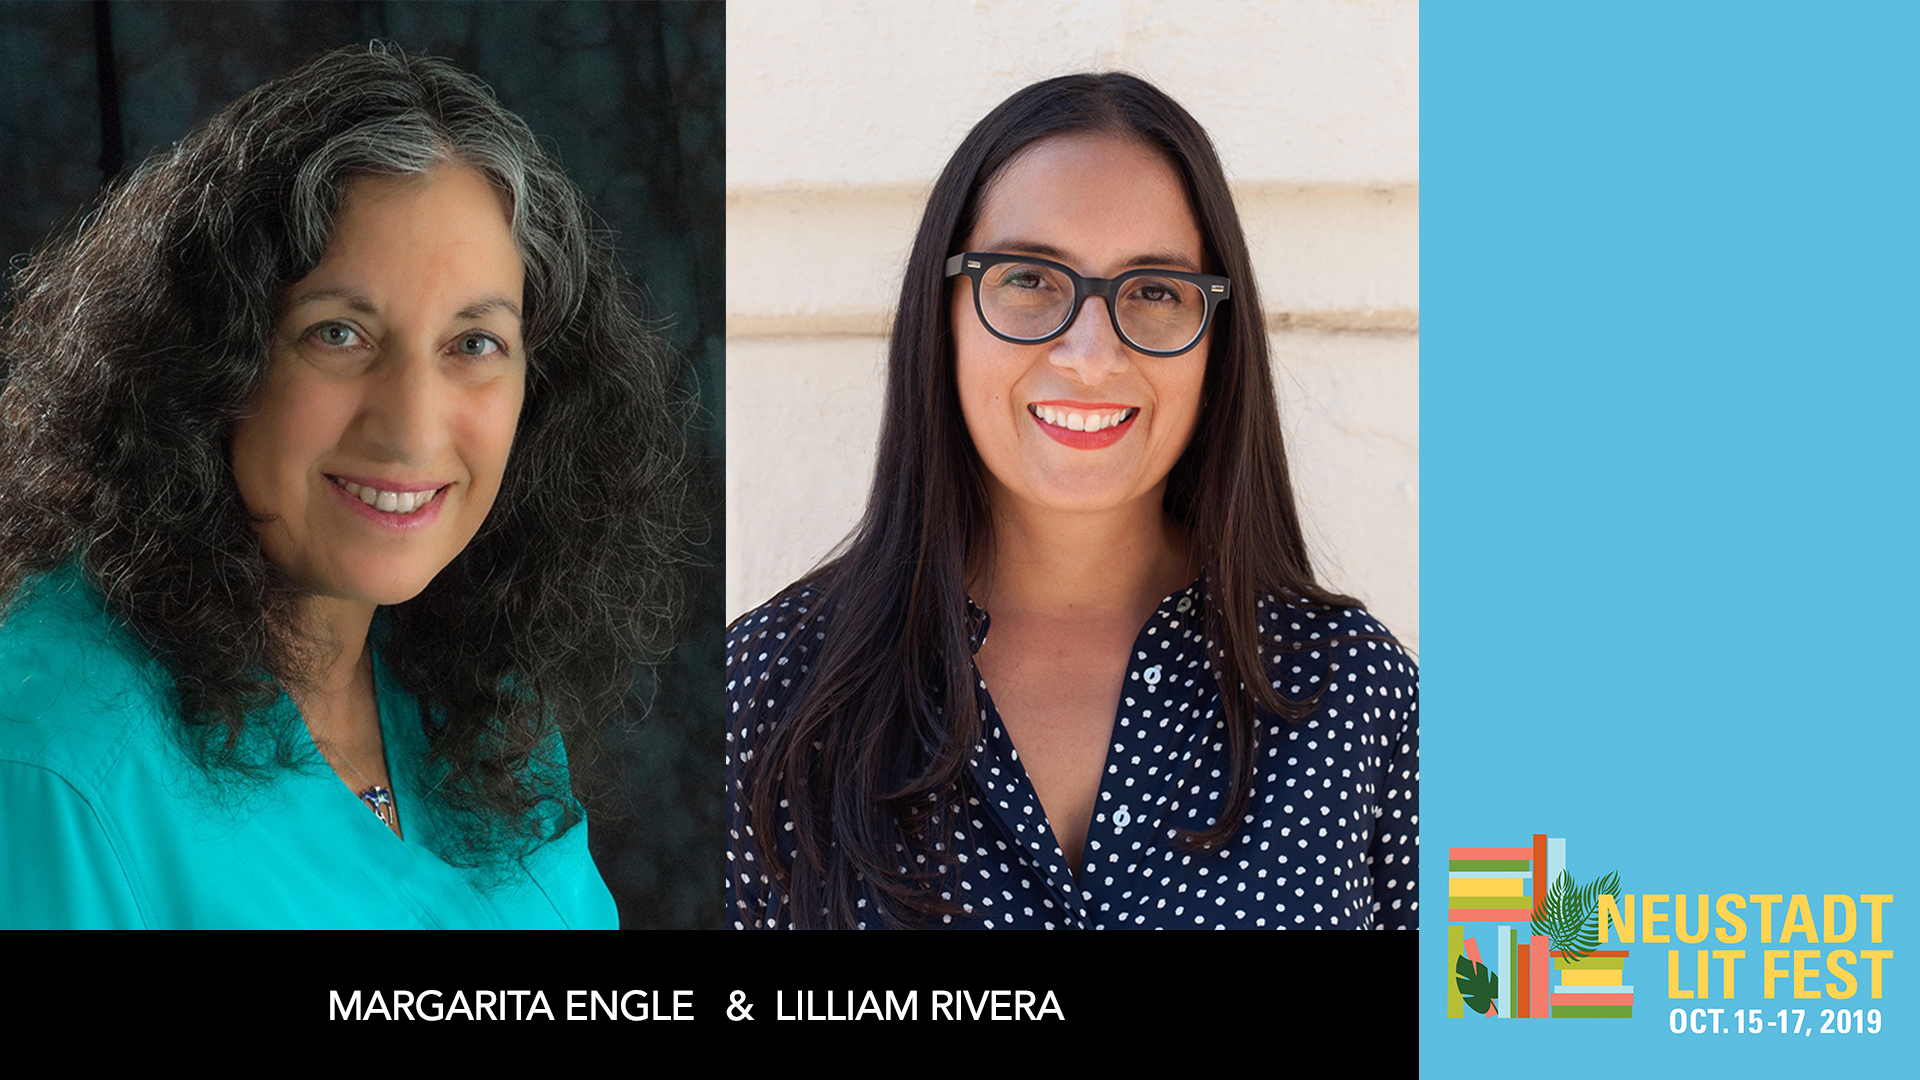 A conversation between Margarita Engle and Lilliam Rivera